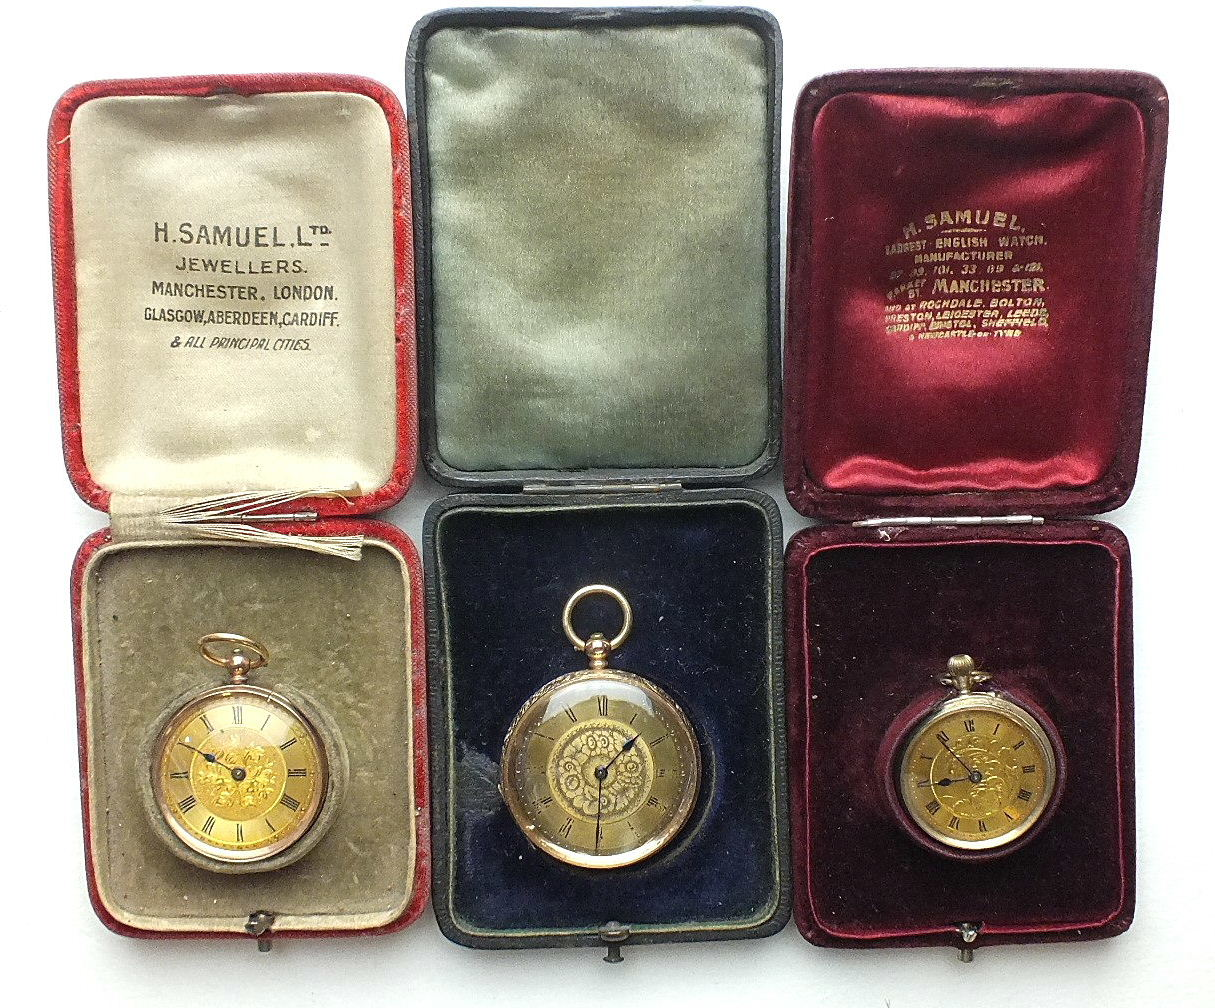 Lot 243 - A ladies Continental 14k-gold-cased open-face key-wind pocket watch, a smaller 9k-cased watch and